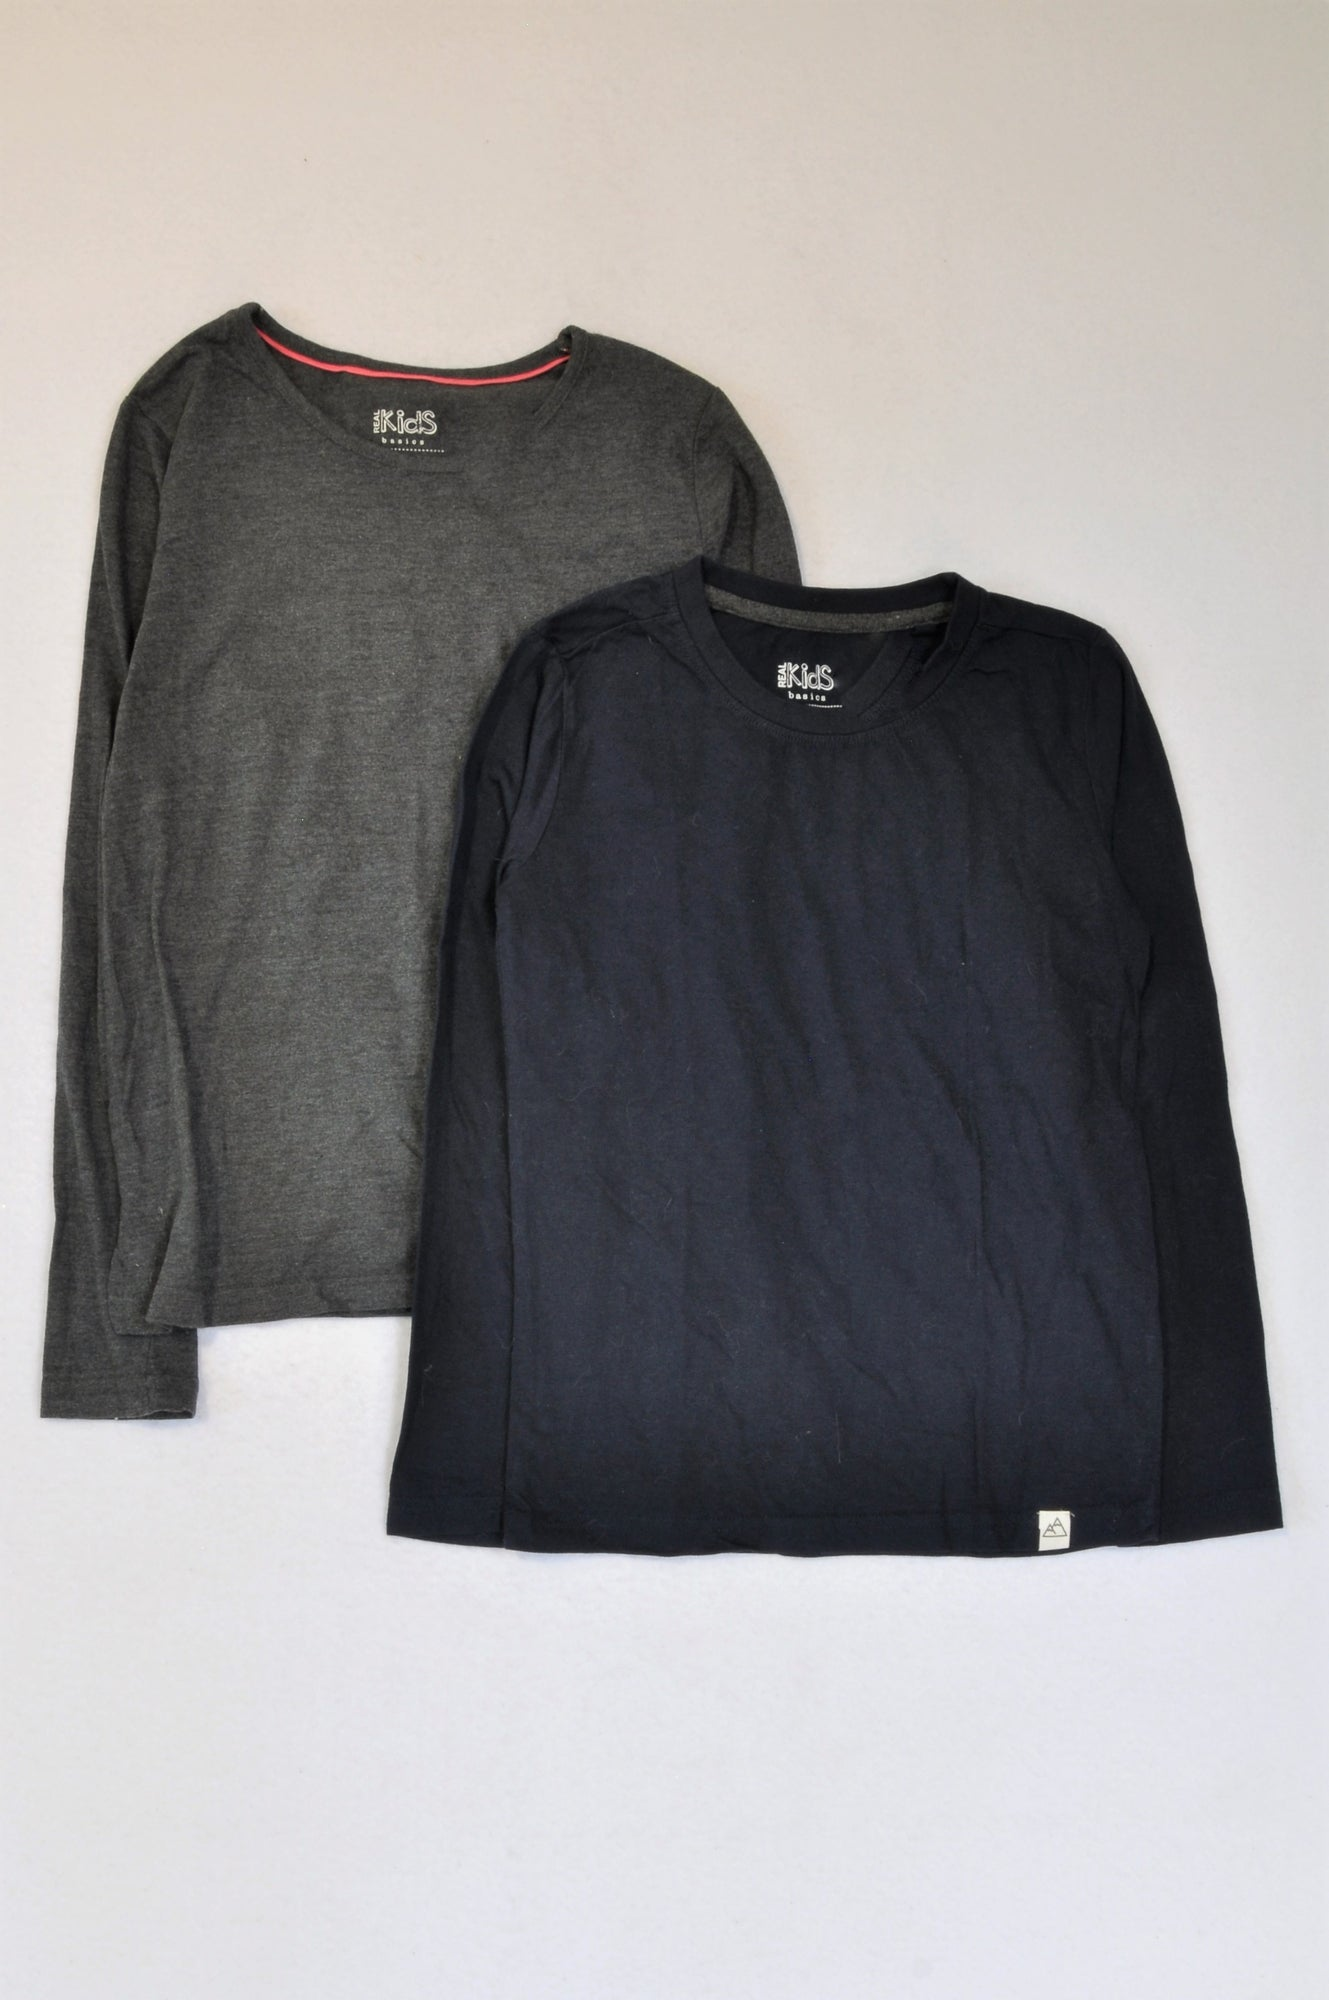 Pick 'n Pay 2 Pack Navy & Charcoal Long Sleeve T-shirts Girls 9-10 years